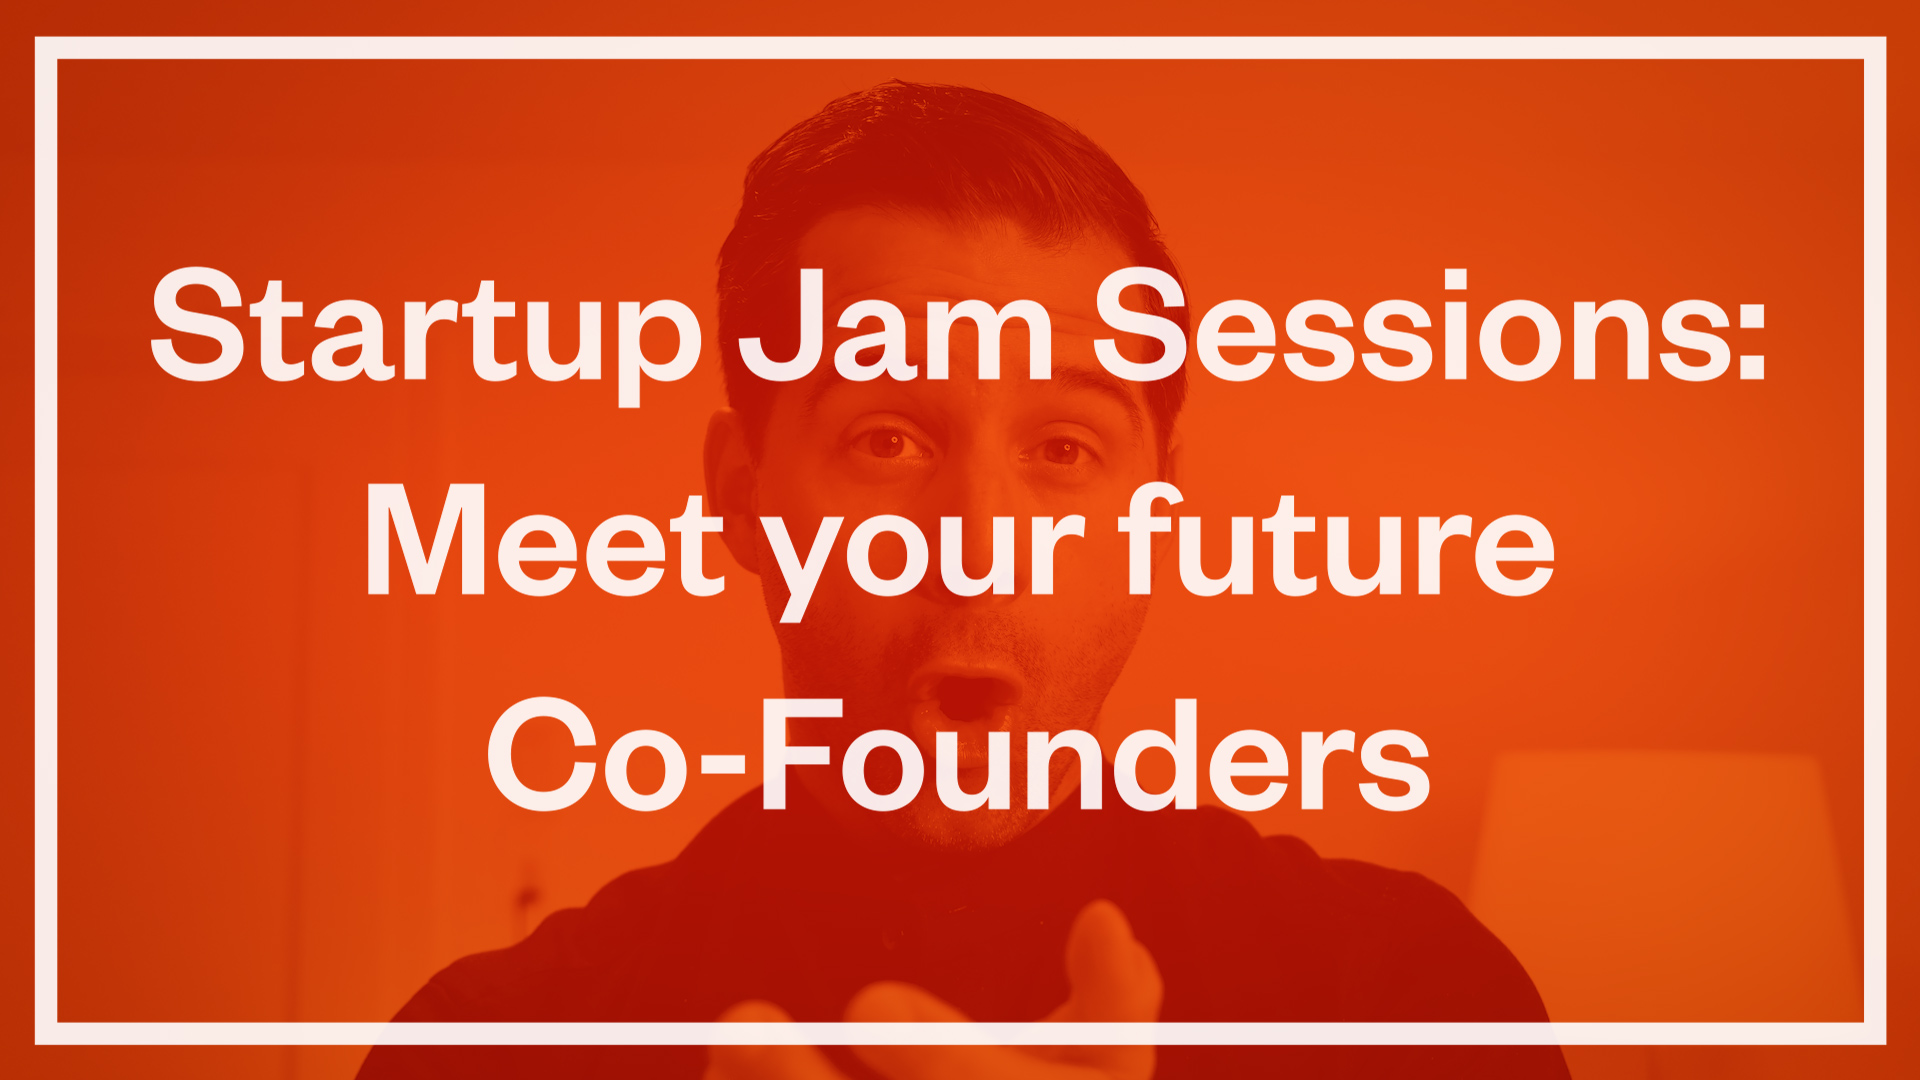 Startup Jam Sessions: Meet your future Co-Founders